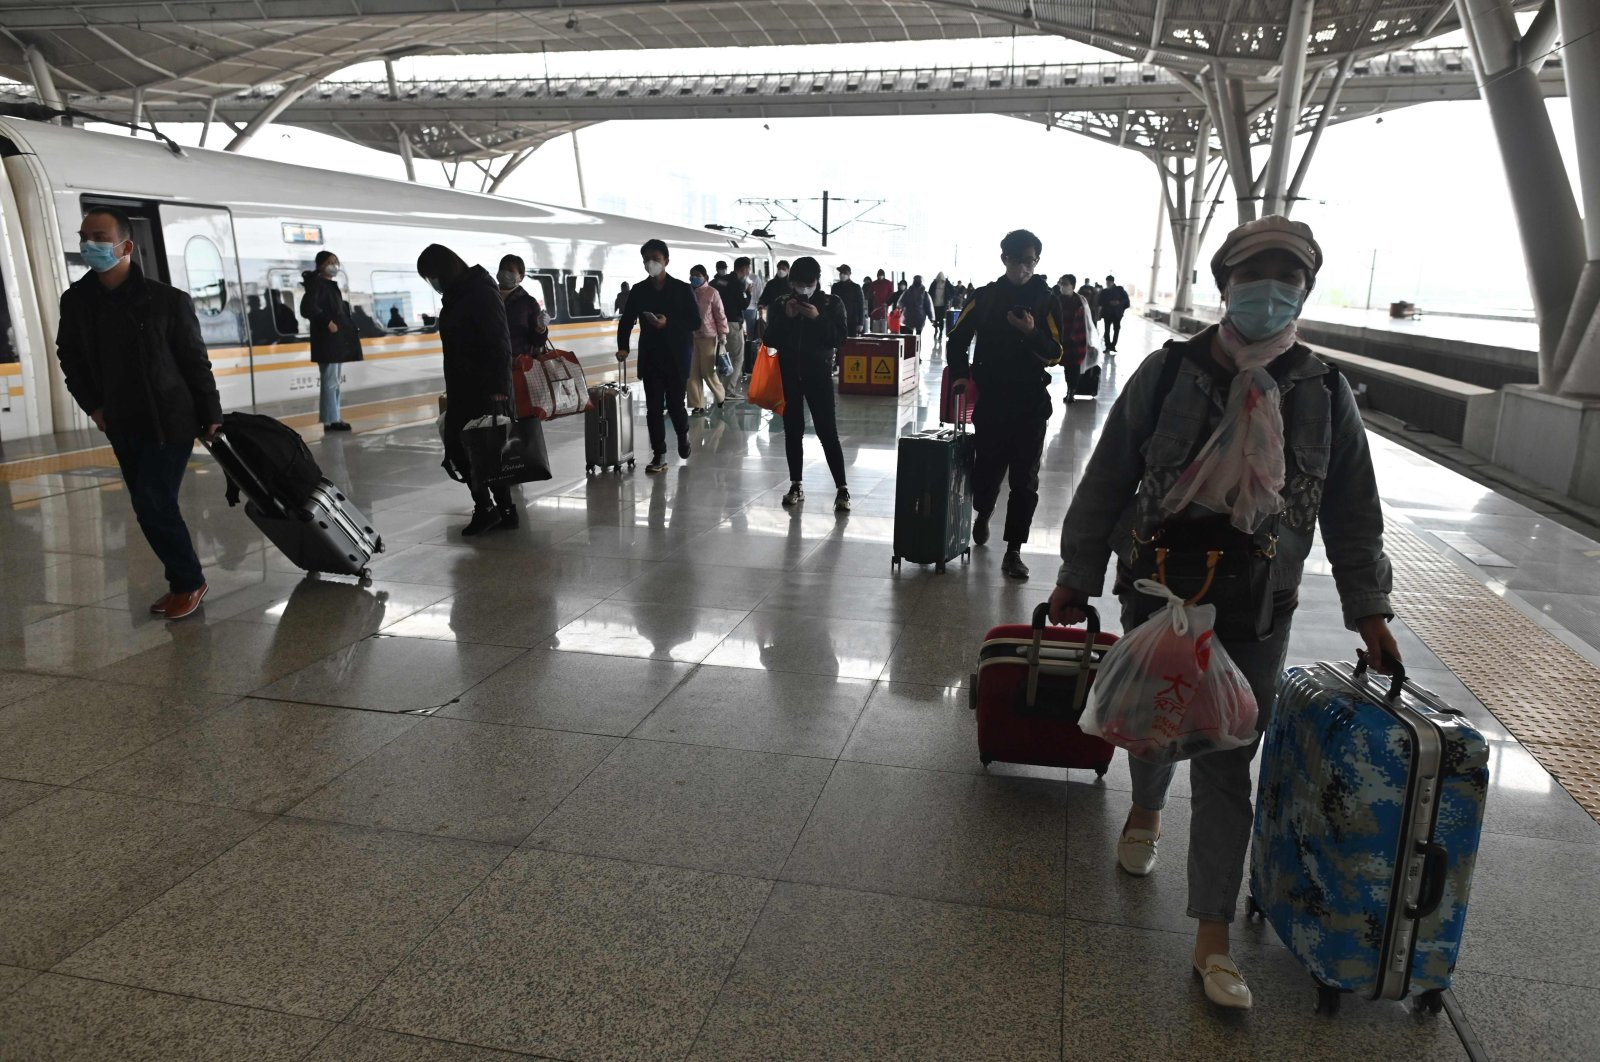 Passengers arrive at the railway station in Wuhan on March 28, 2020, after travel restrictions into the city were eased following two months of lockdown due to the COVID-19 outbreak. (AFP Photo)